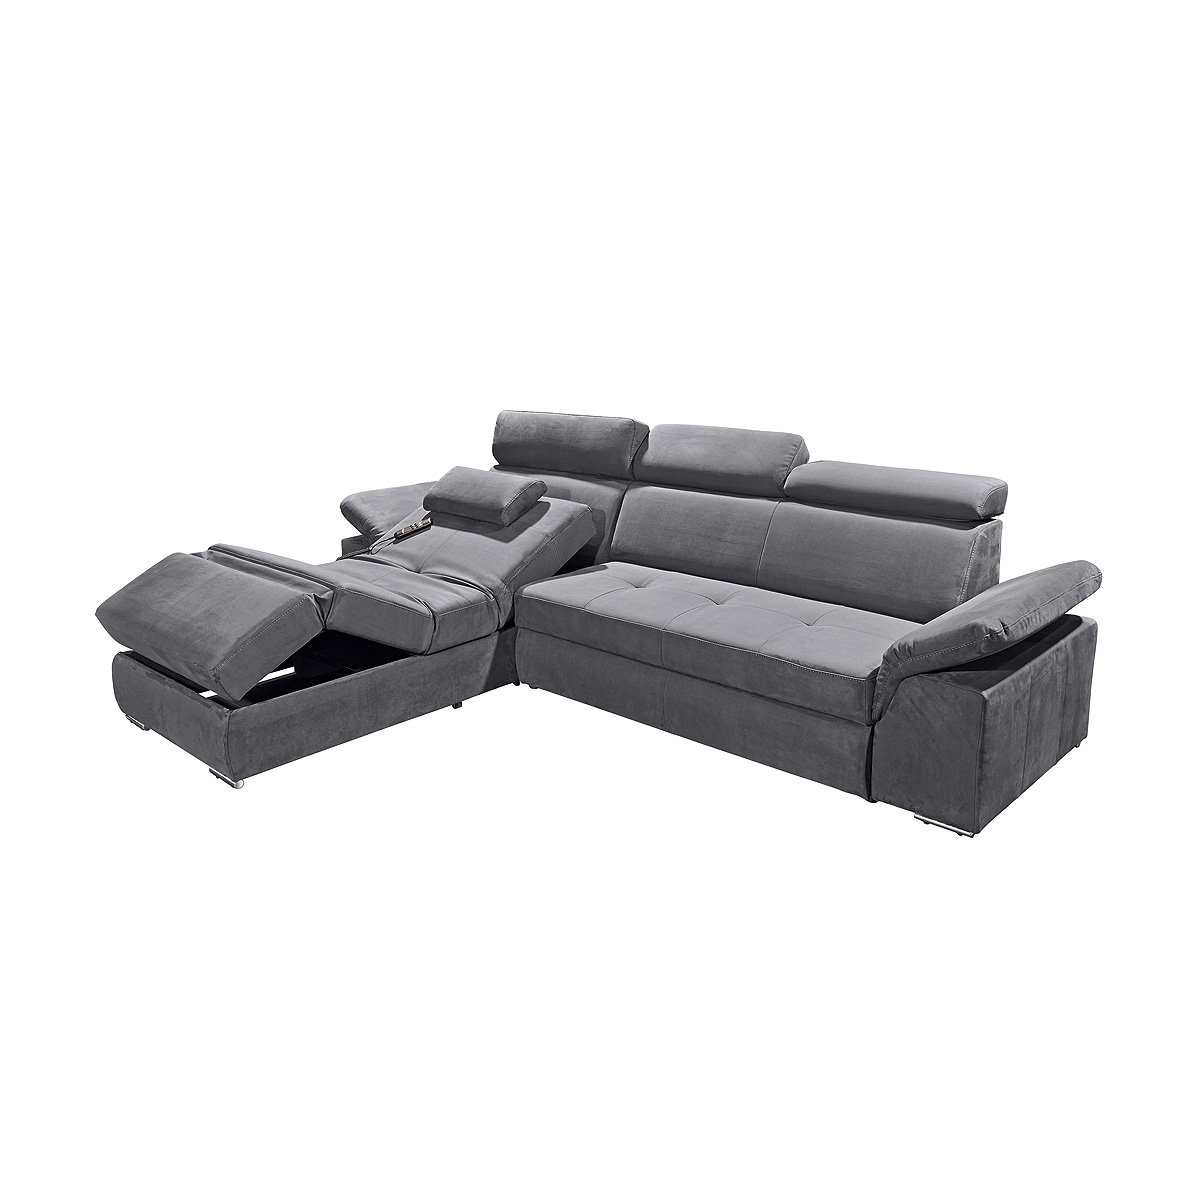 ecksofa napoli sofa relaxsofa wohnlandschaft in anthrazit mit relaxfunktion eur. Black Bedroom Furniture Sets. Home Design Ideas